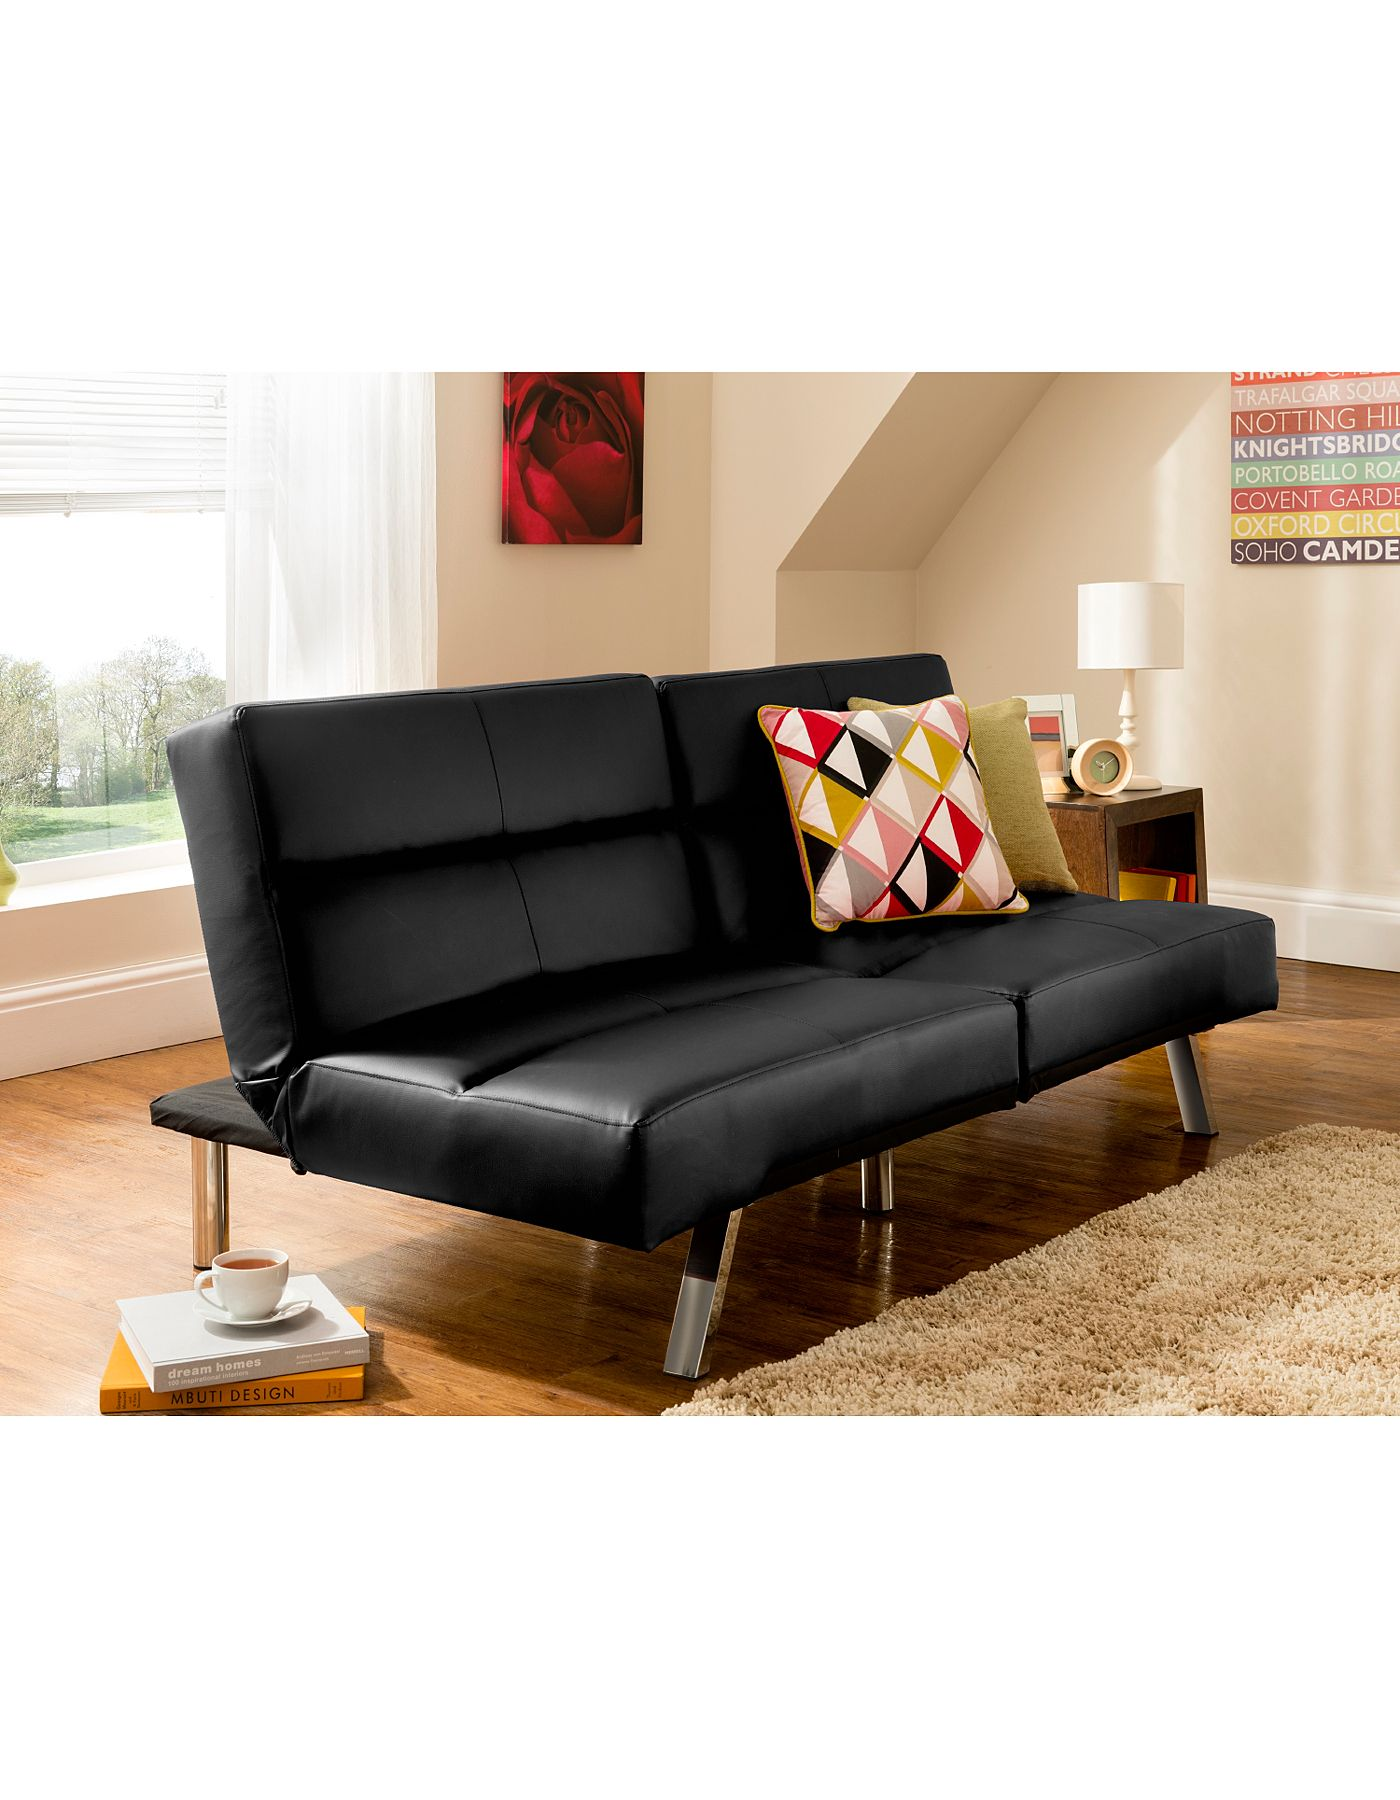 Tenby Click Clack Sofabed In Black Sofabeds Asda Direct